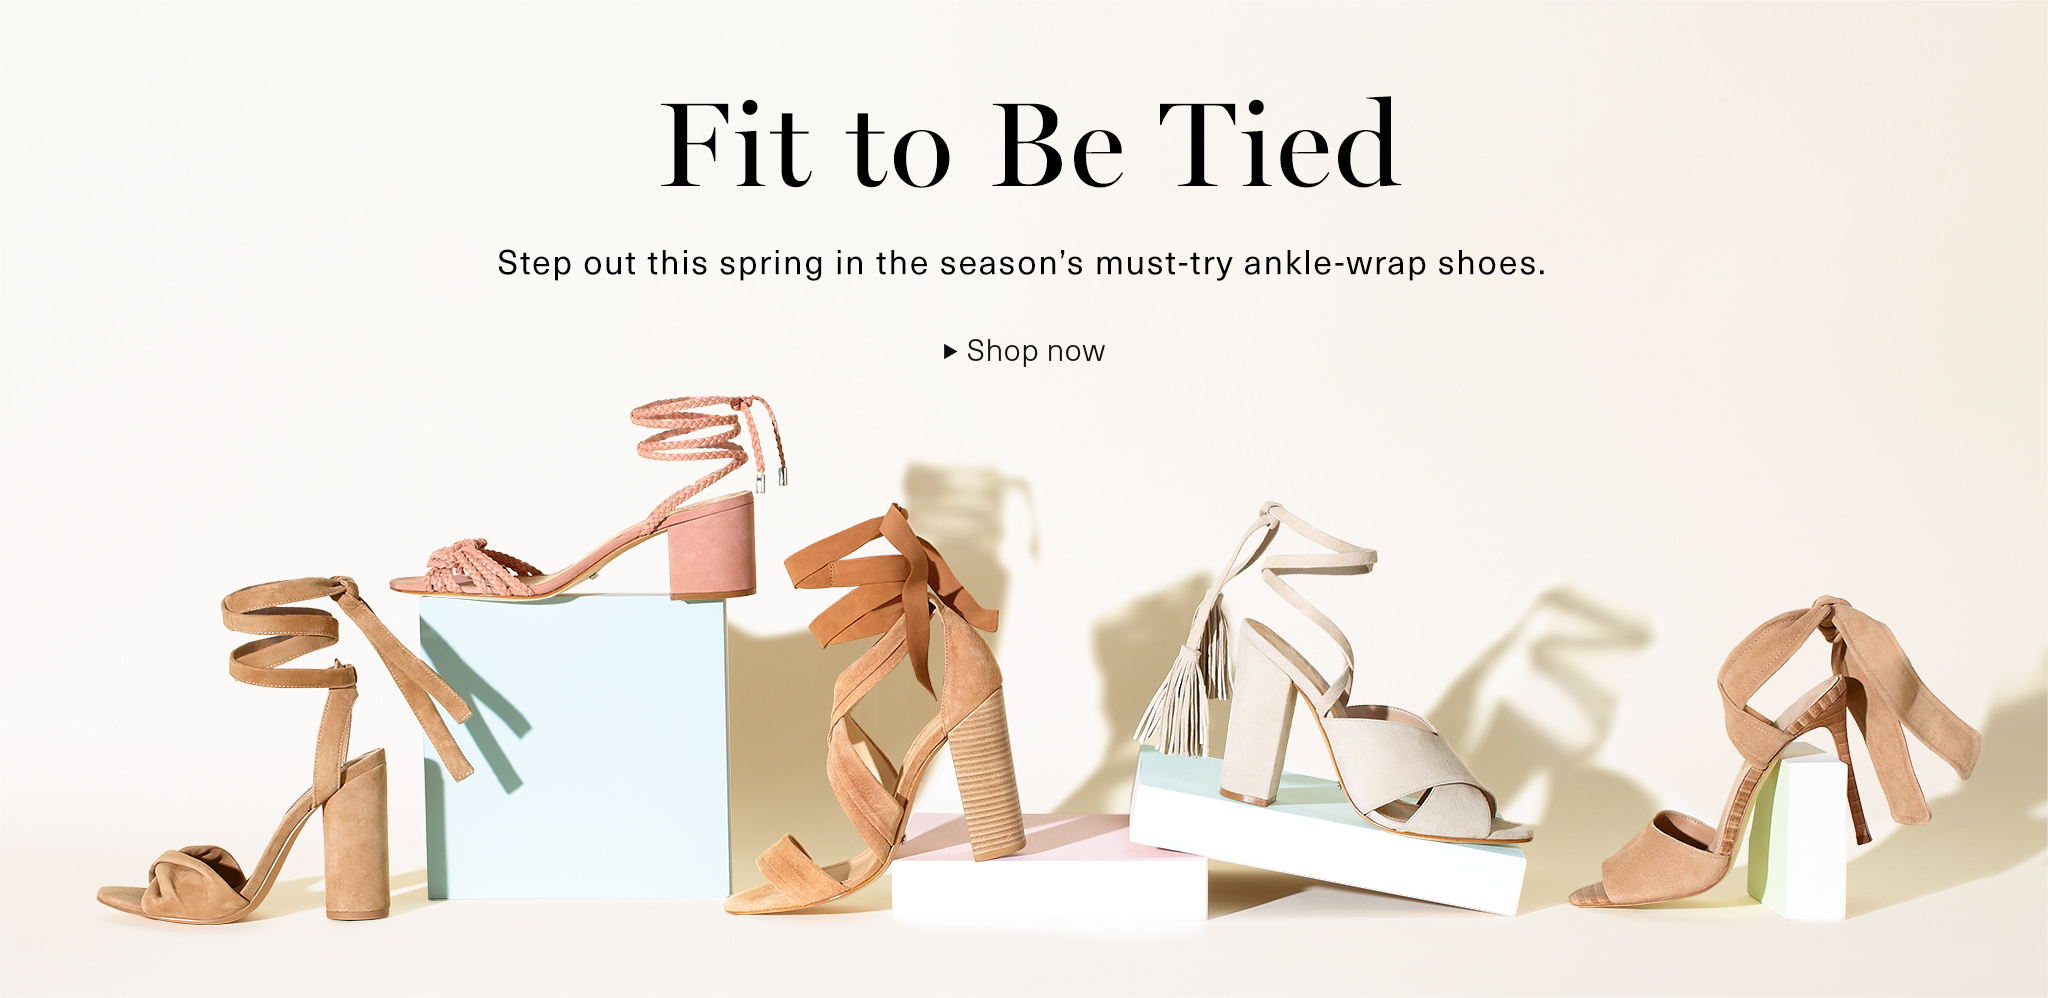 Fit to be Tied; Step out this spring in the season's must-try ankle-wrap heels